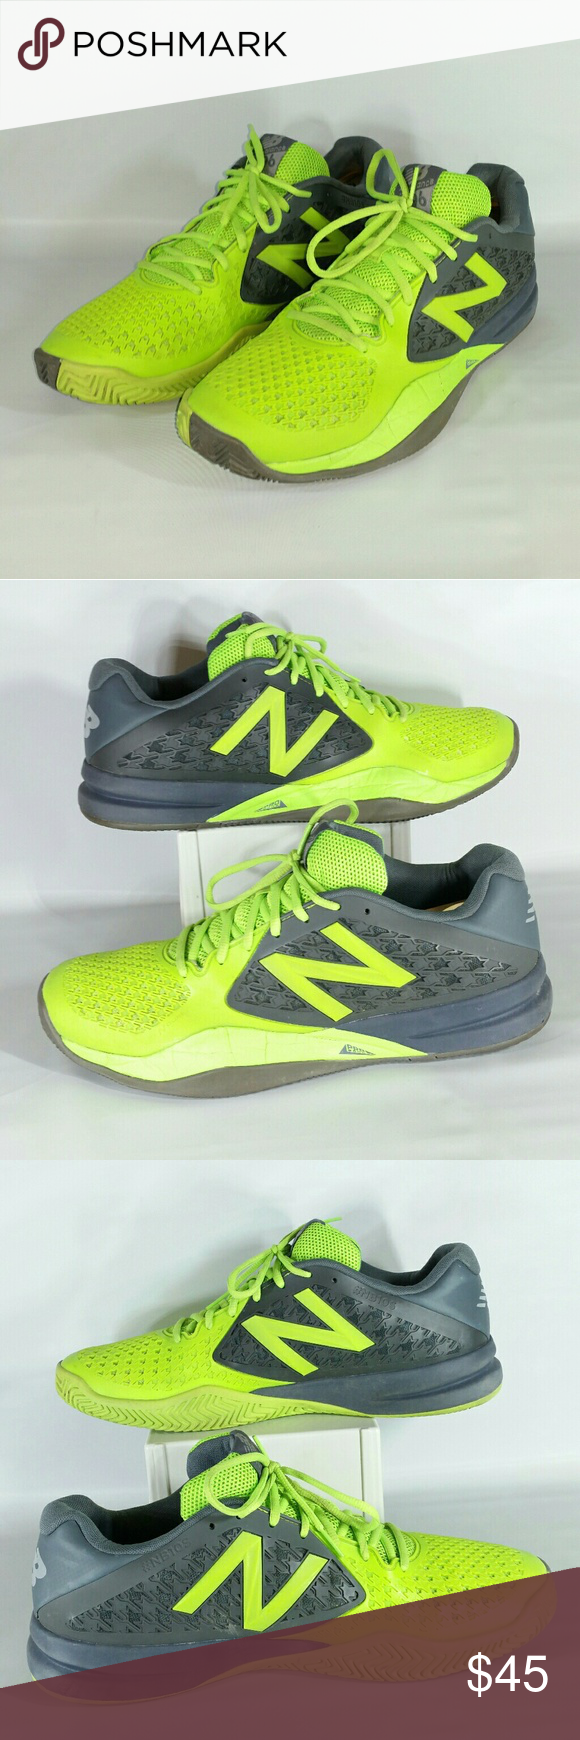 New Balance 996 Nb10s Revlite Probank Tennis Shoes New Balance 996